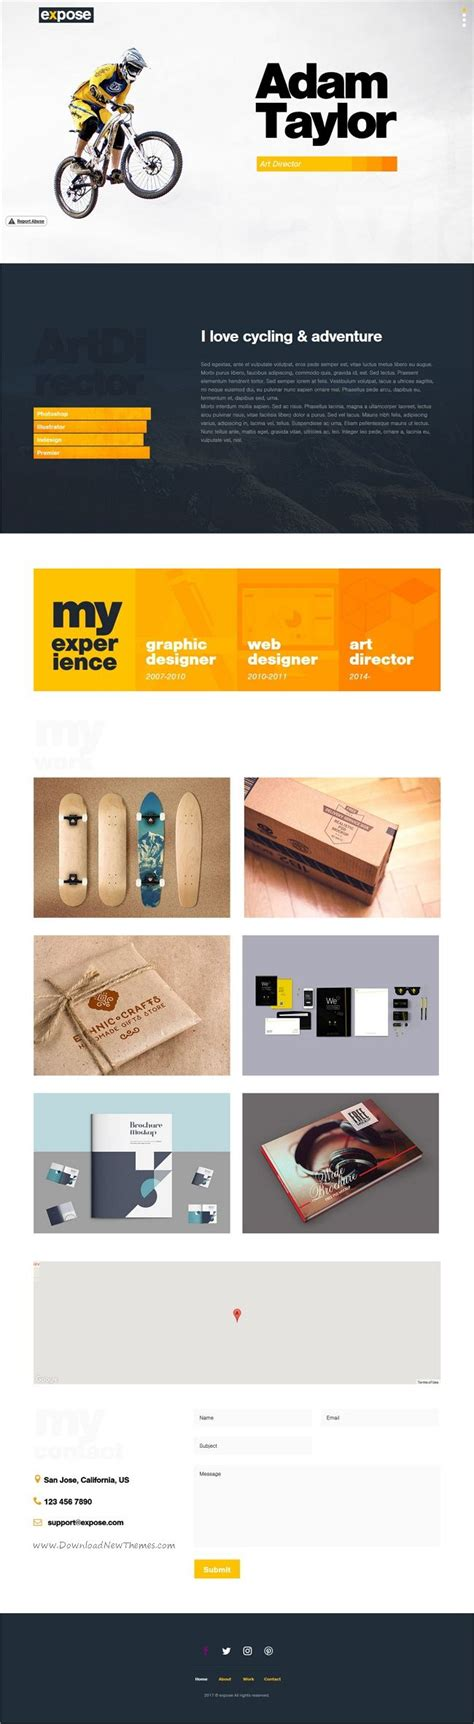 adobe muse portfolio templates 421 best best adobe muse template collection images on